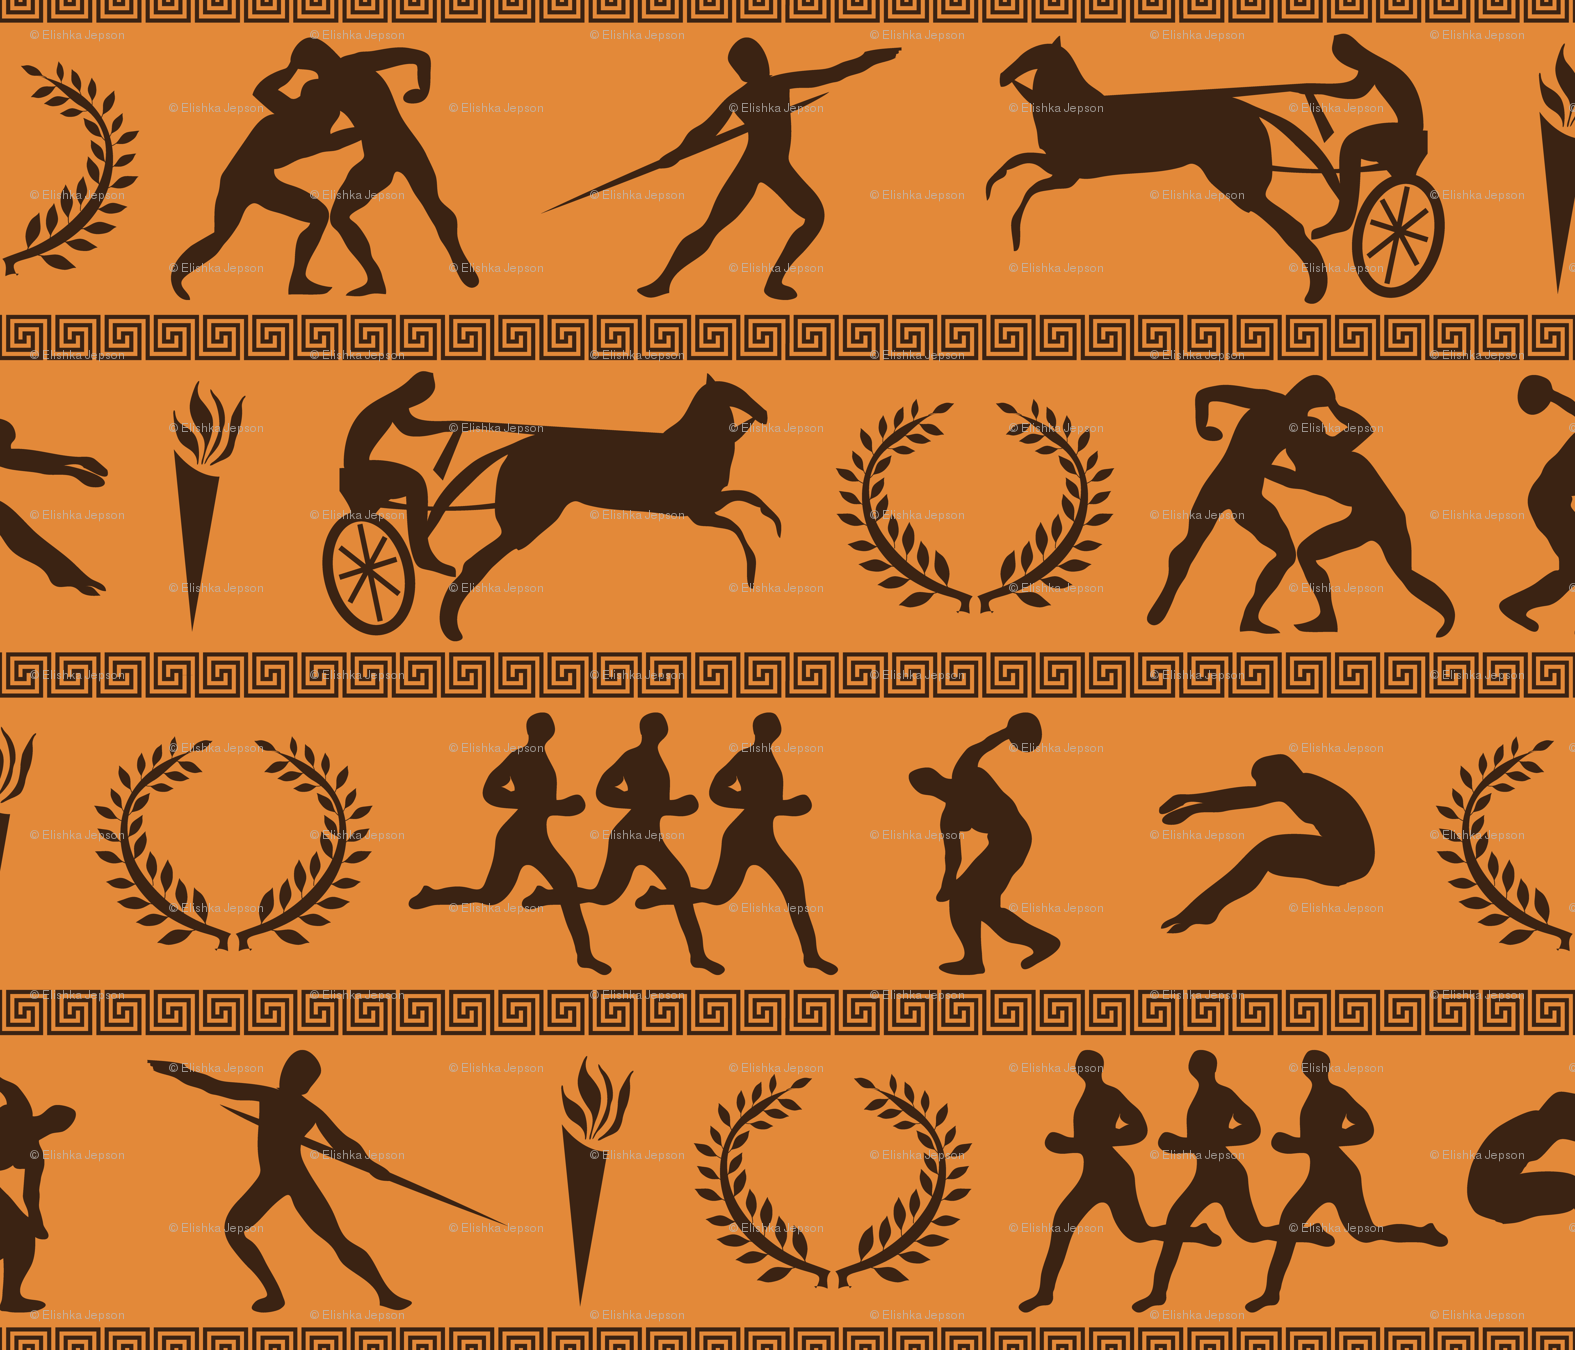 a report on the ancient olympic games in greece and the spirit of olympic athletes What events took place in the ancient olympic games for the women athletes about without discrimination of any kind and in the olympic spirit.